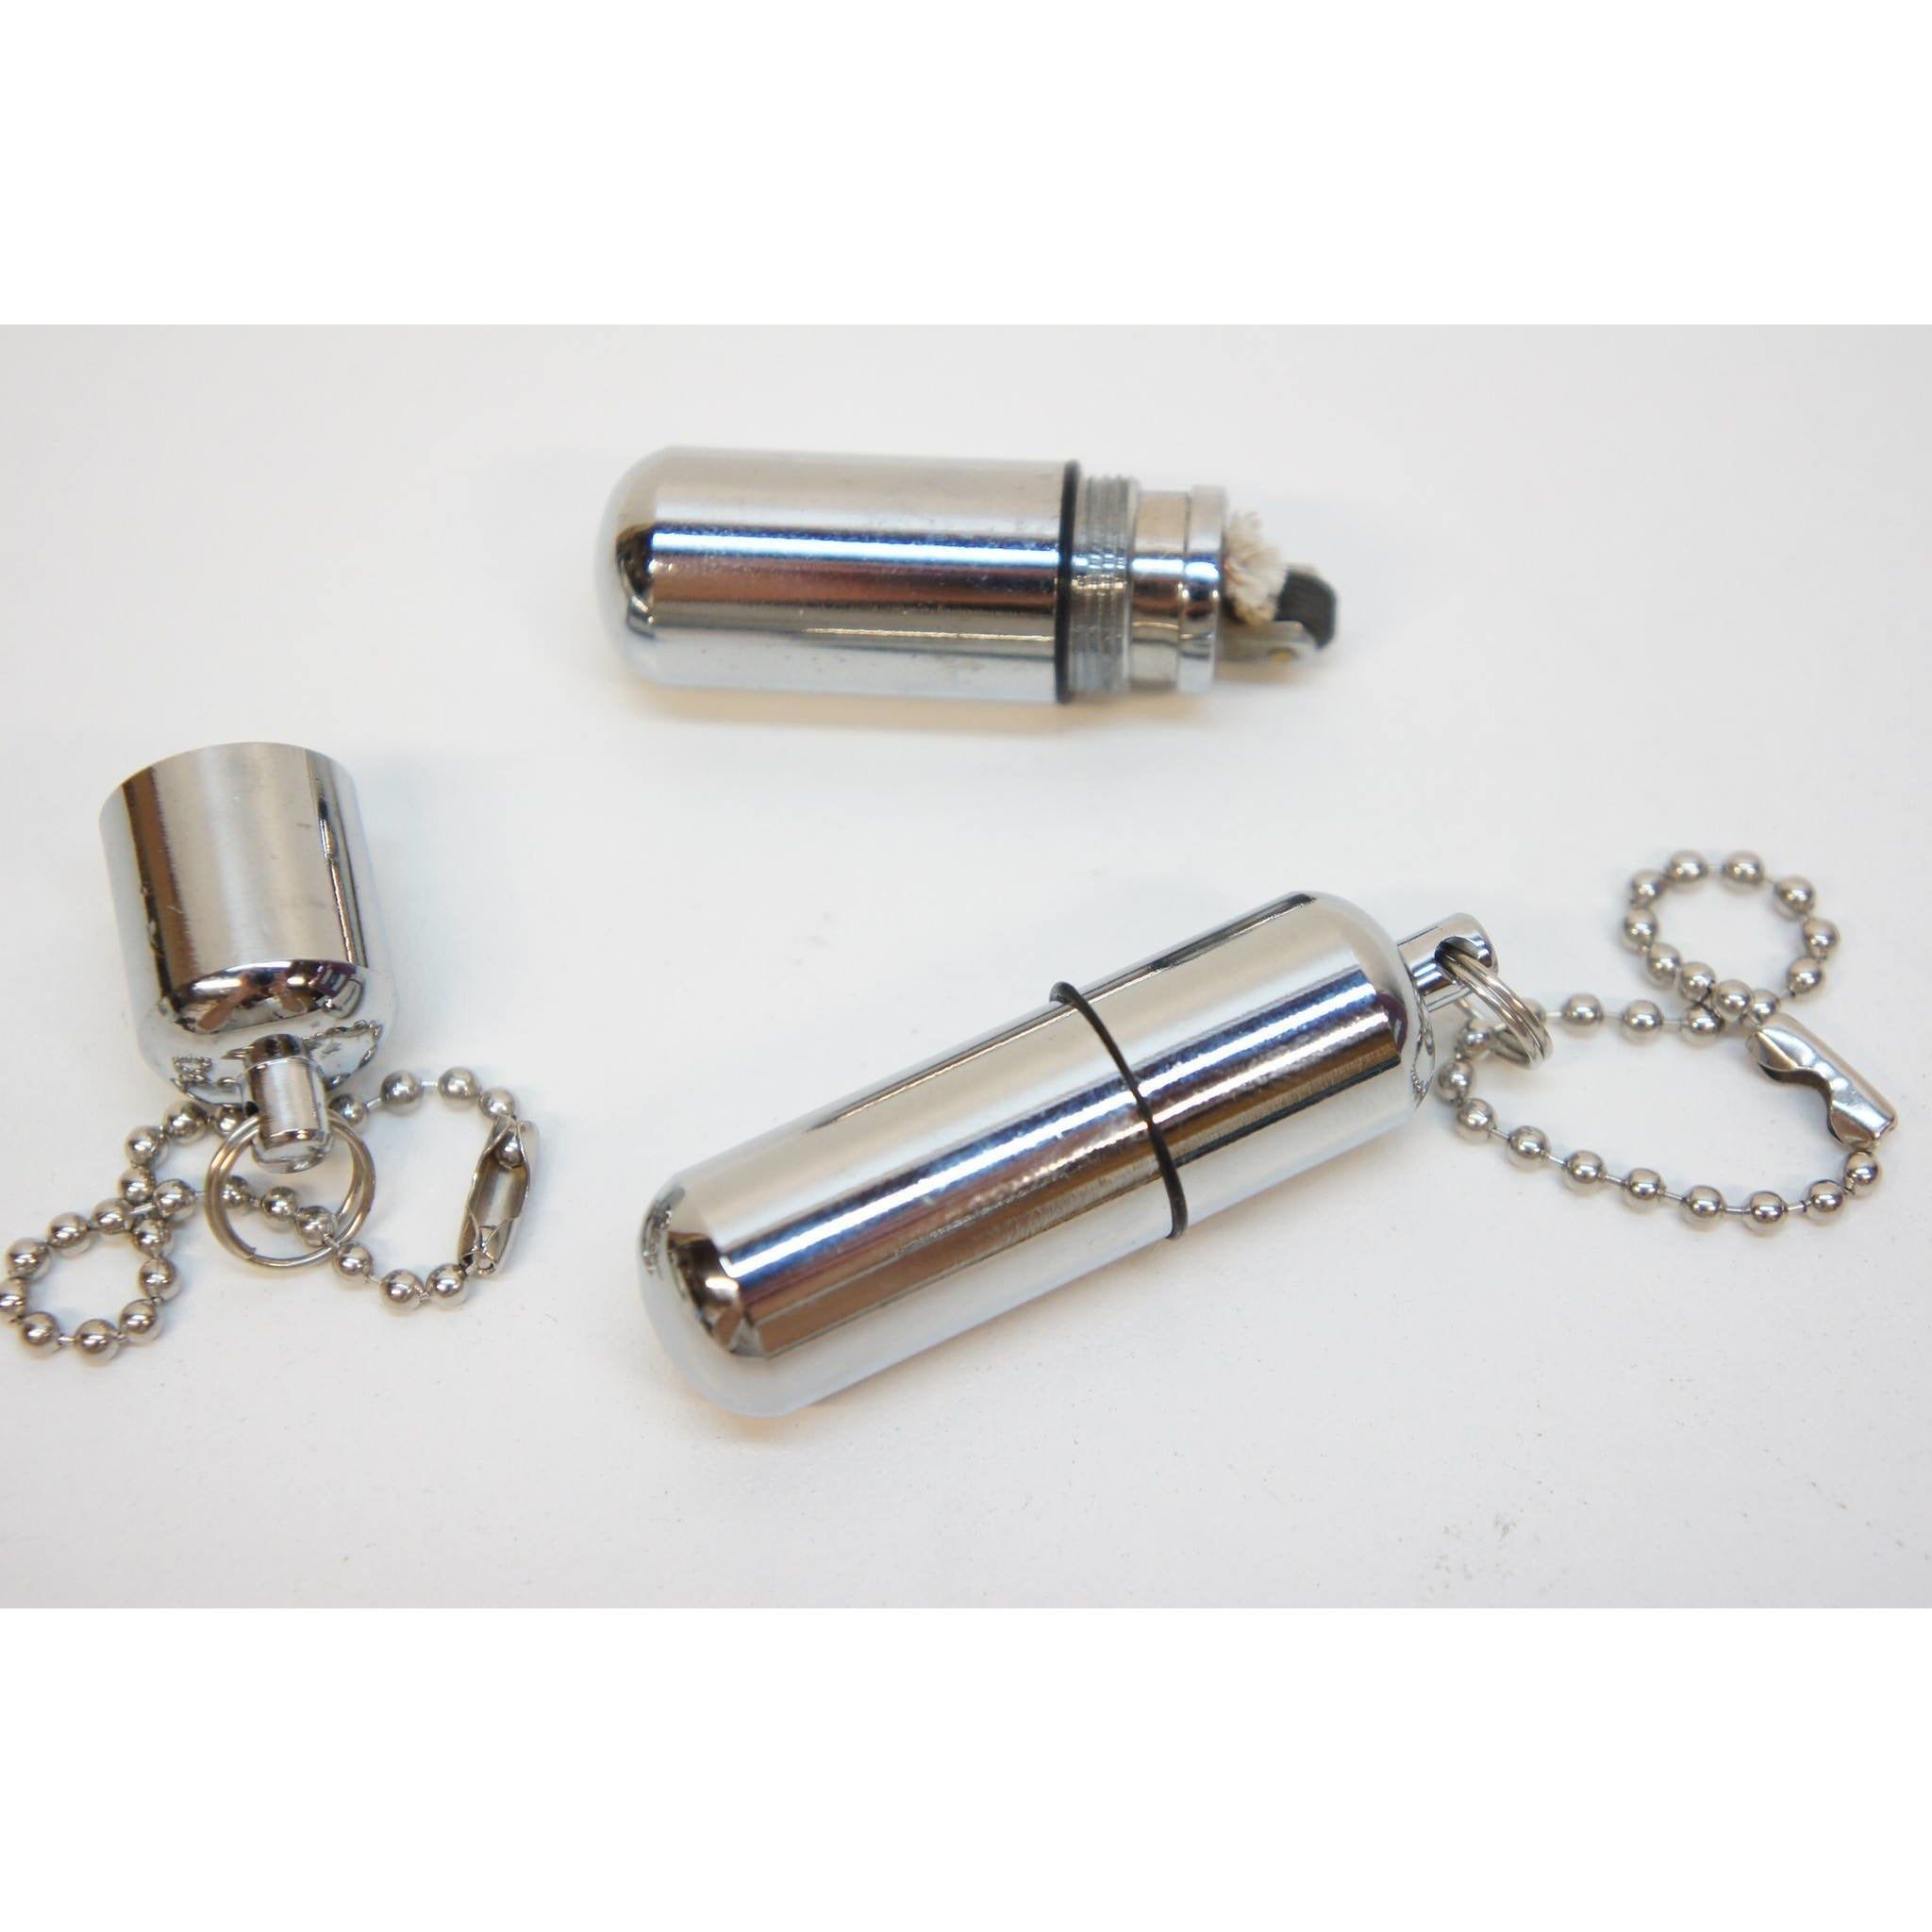 Survival Waterproof Cigarette Flint Lighter Silver - Mini Peanut Capsule Outdoor Oil Lighter - Fire Starter Key Chain Lighter - WoodStonePipes.com   - 3